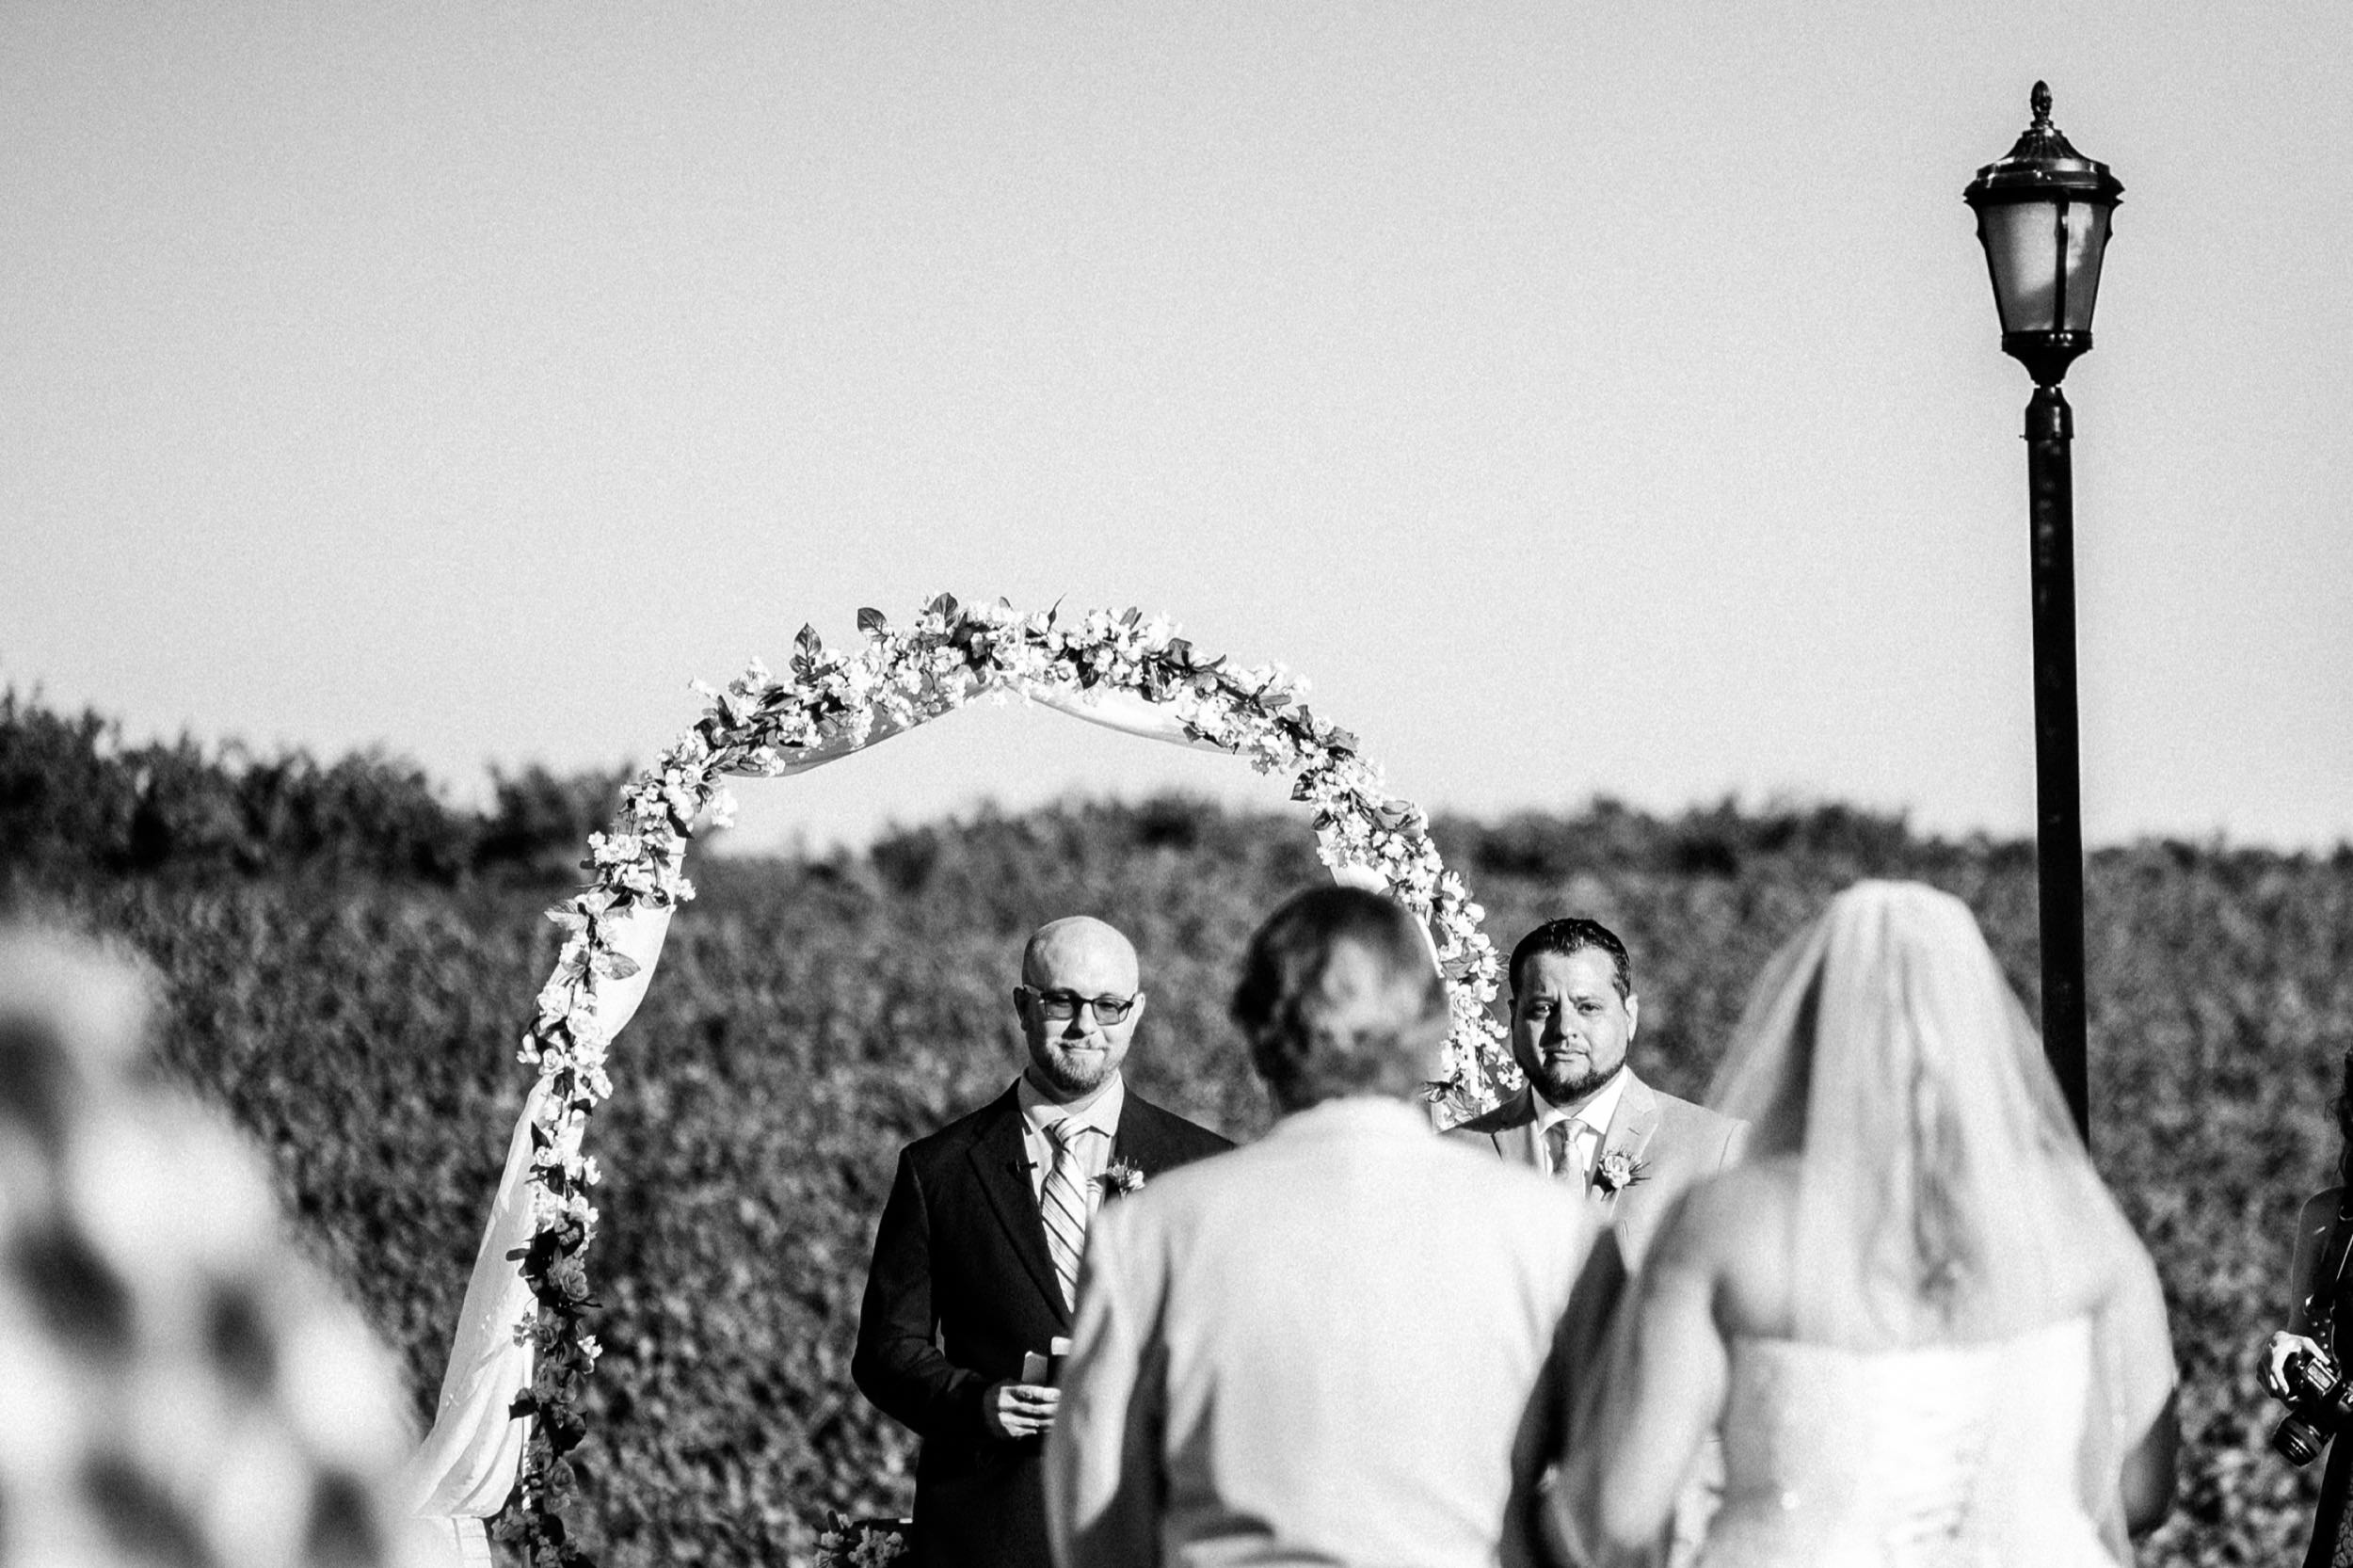 Tearful Groom Sees Bride for the First Time During Outdoor Vineyard Wedding Ceremony - Fresno Madera